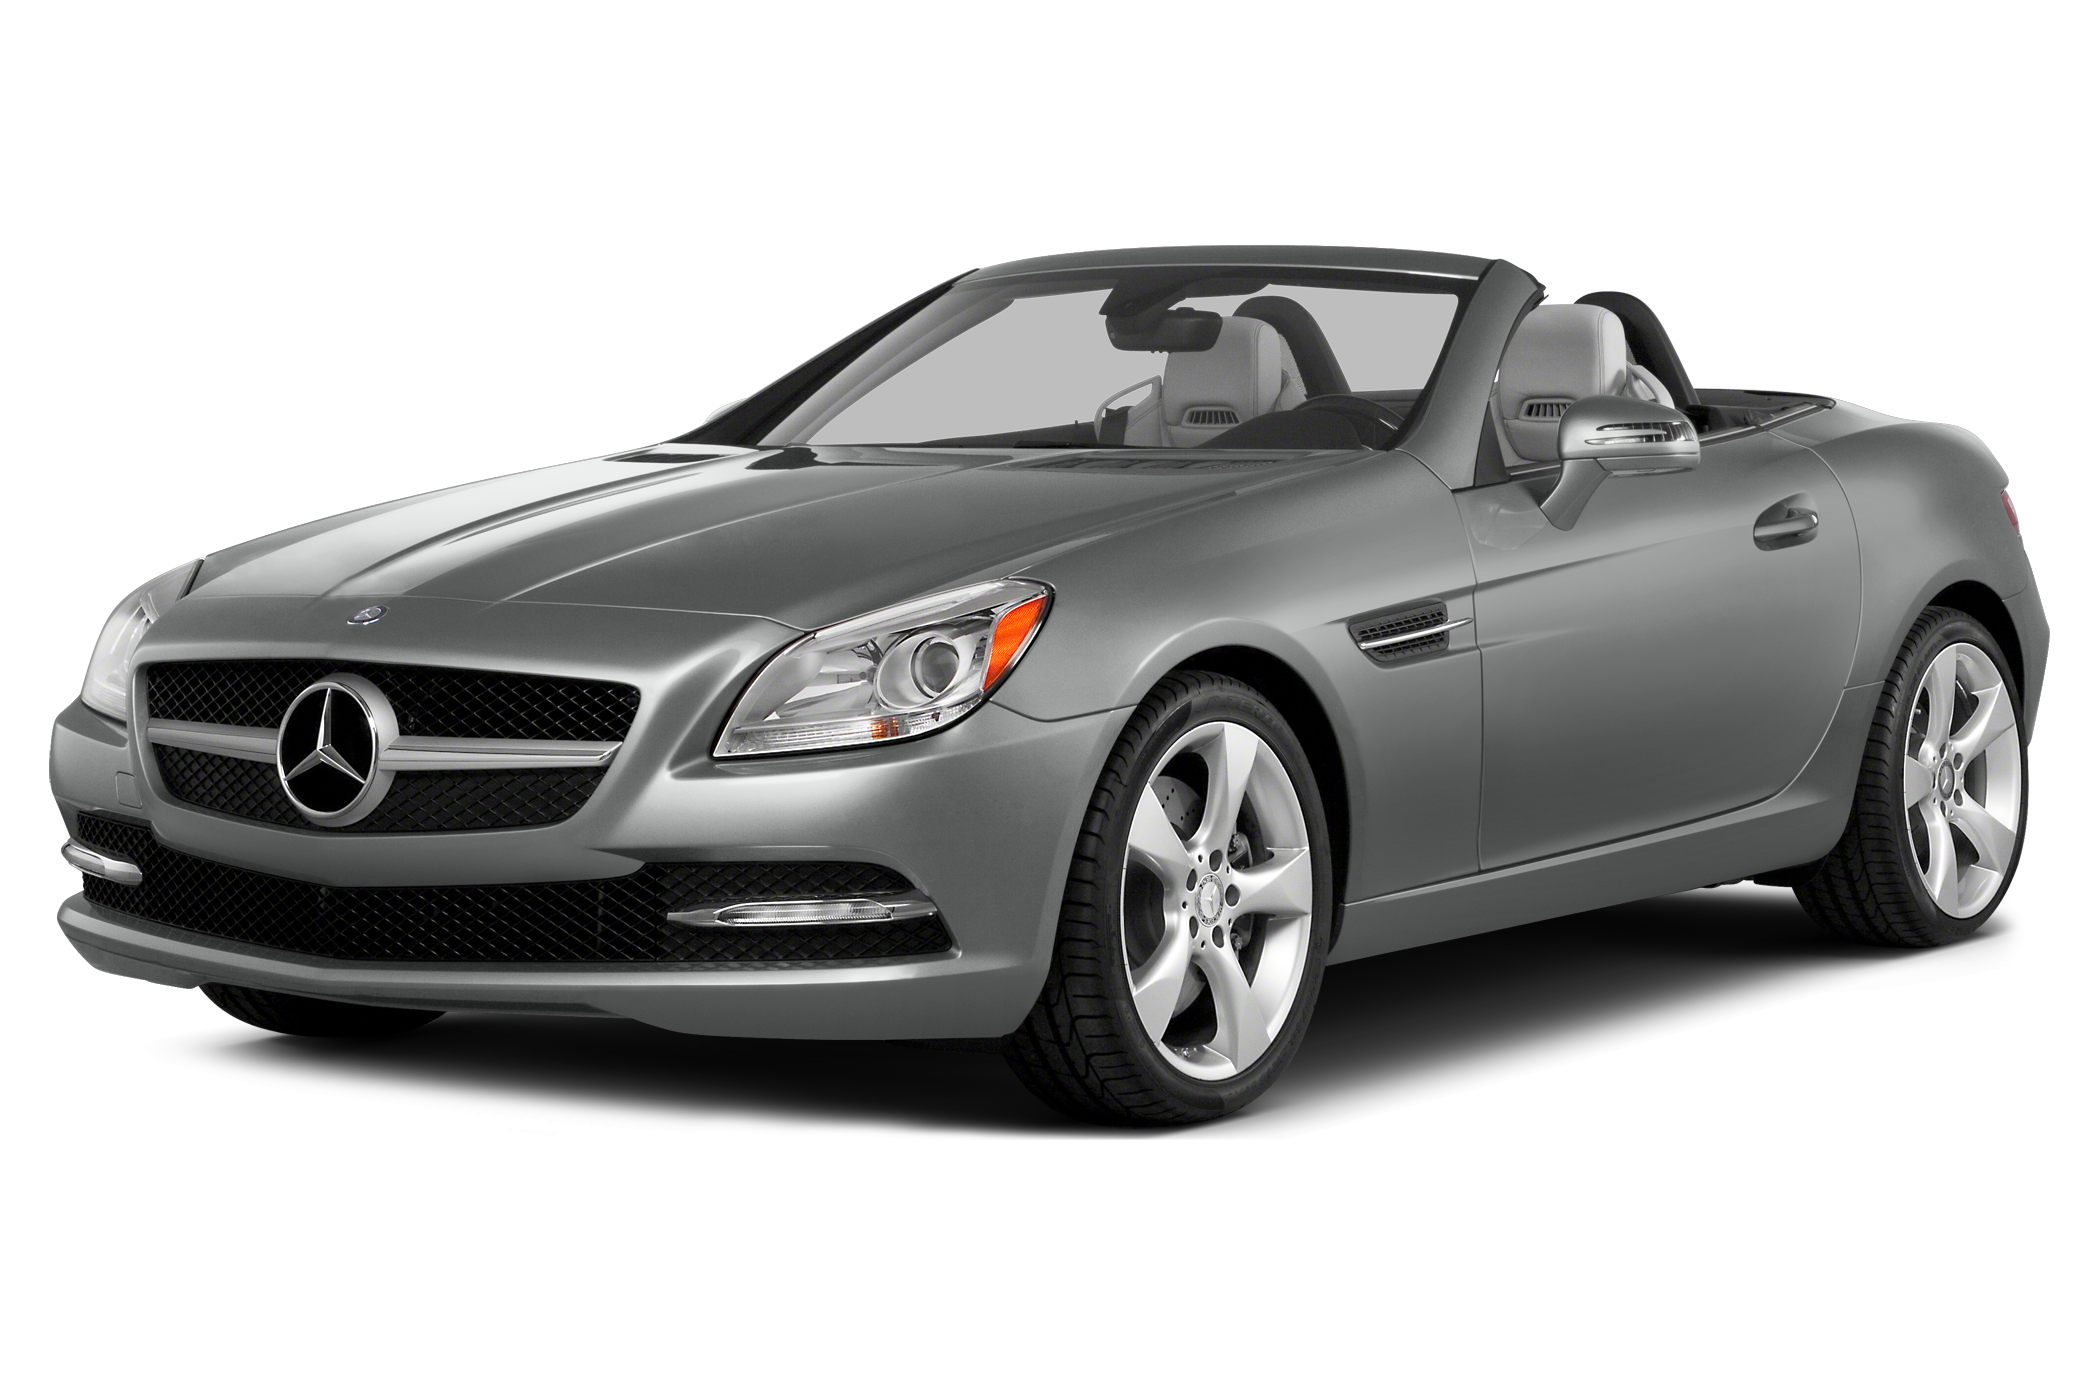 2015 Mercedes-Benz SLK-Class SLK350 Convertible for sale in Los Angeles for $62,540 with 10 miles.